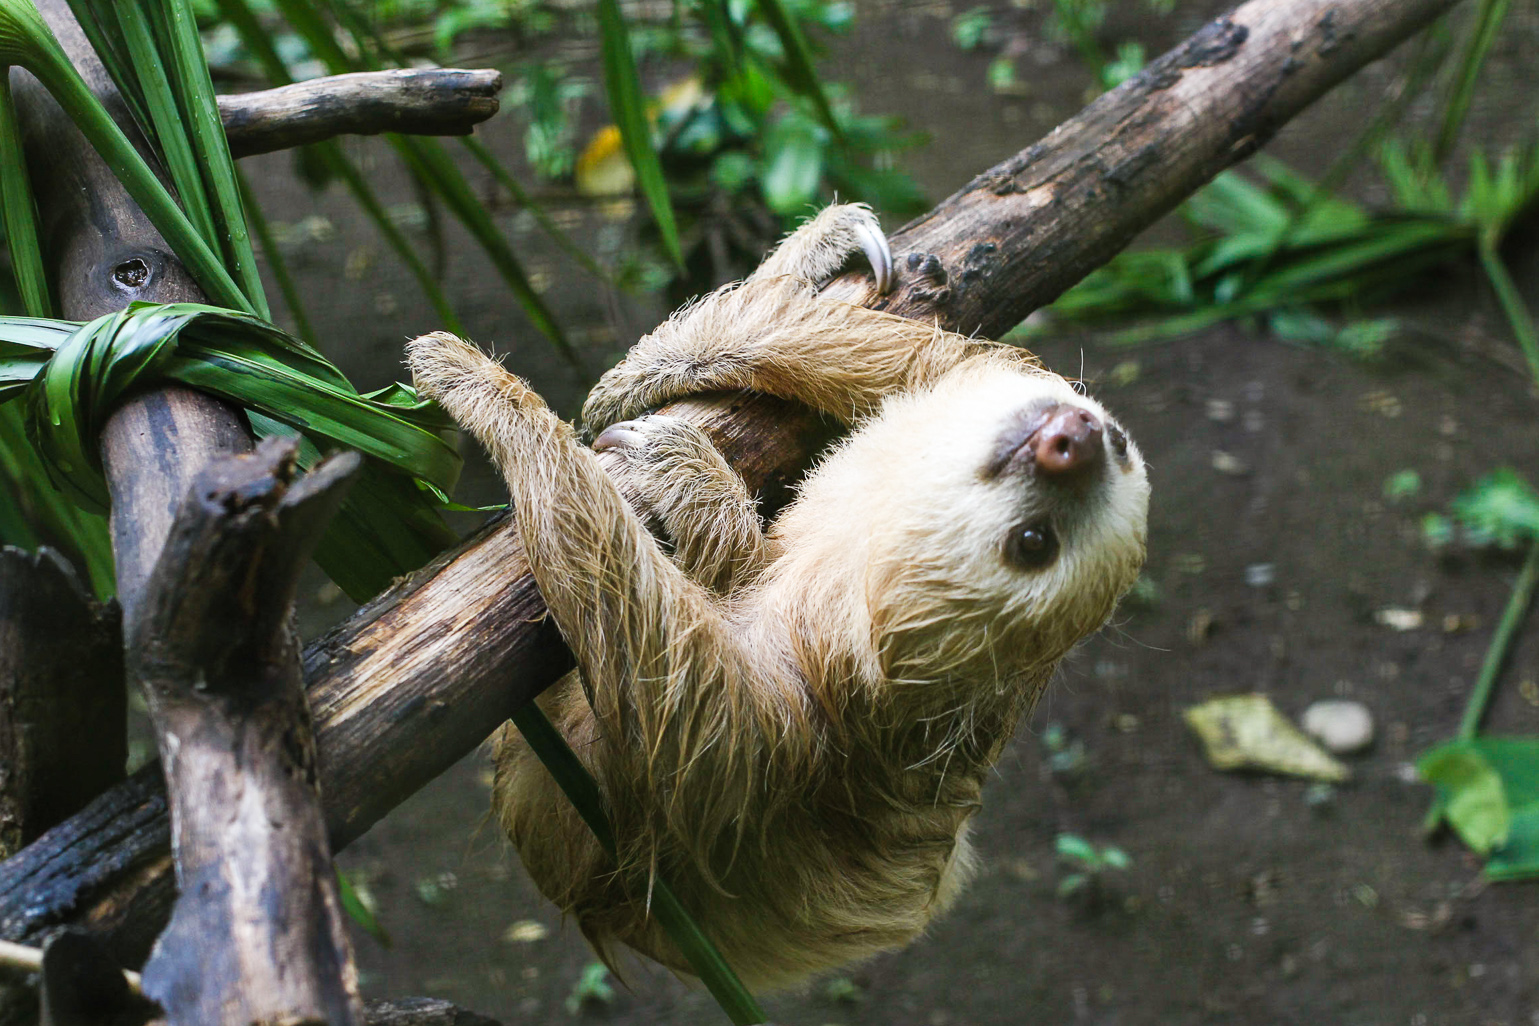 Active sloth at the Tree of Life wildlife sanctuary in Cahuita, Costa Rica